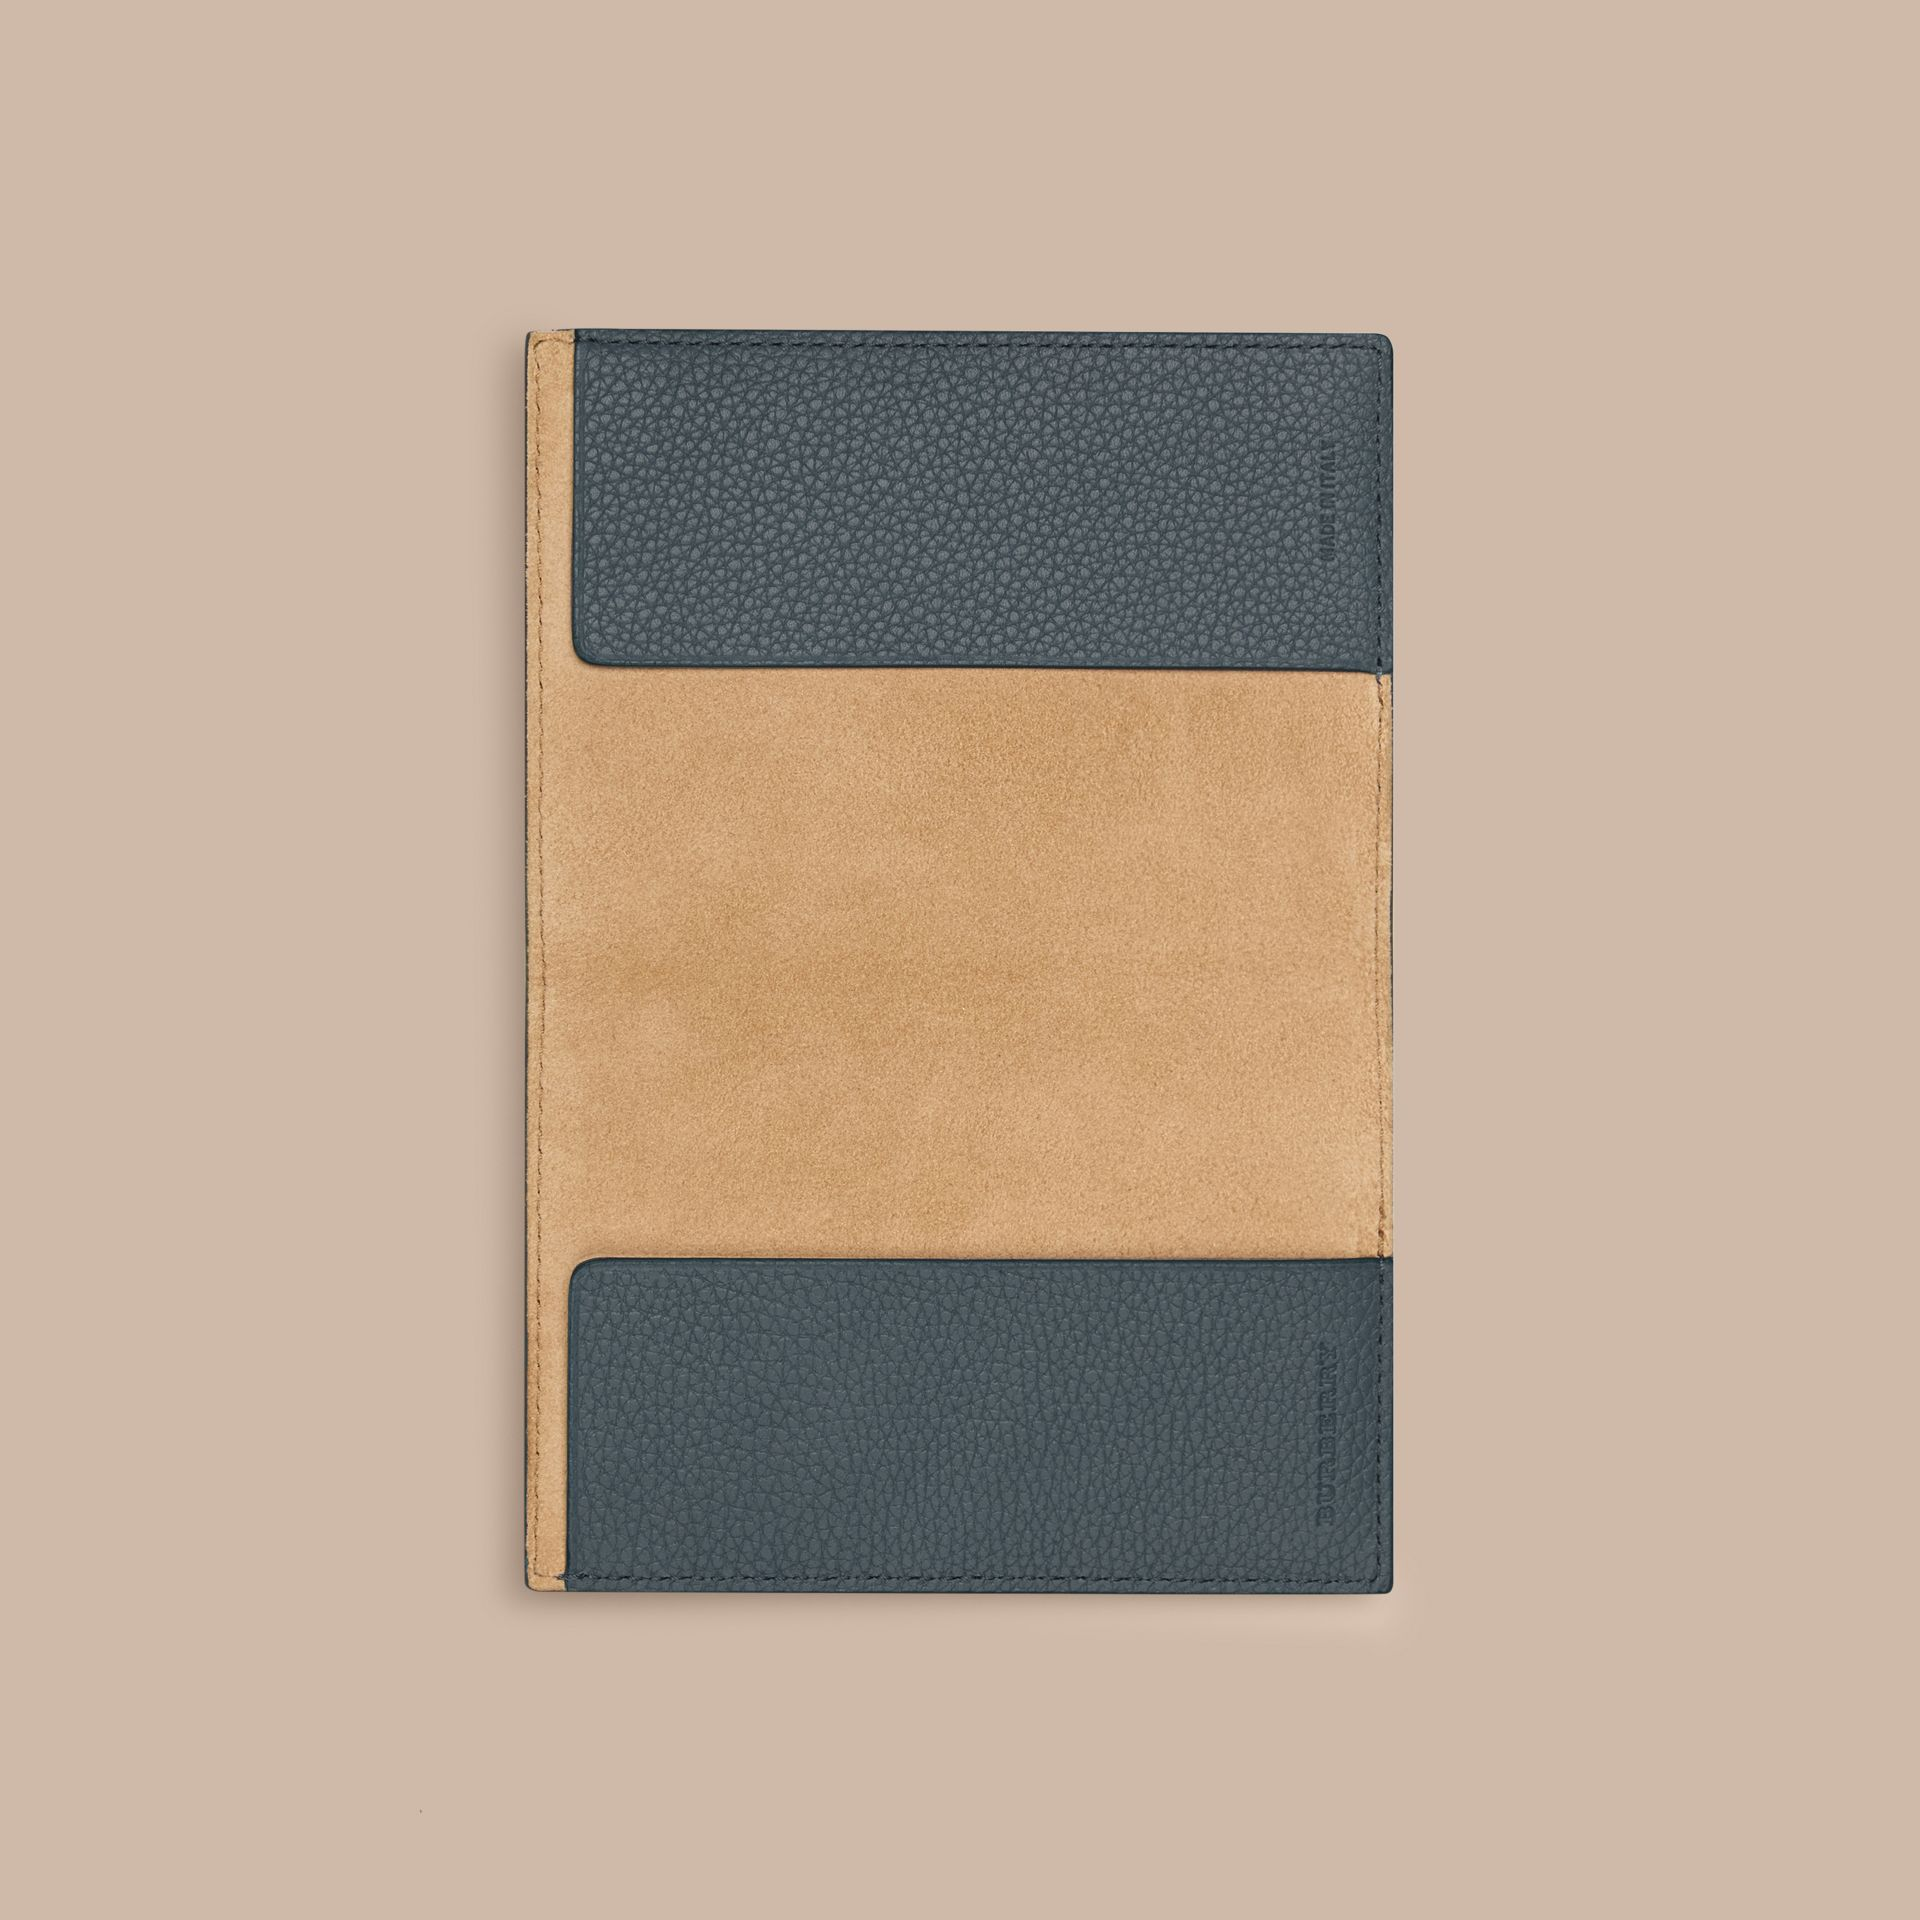 Grainy Leather Passport Cover in Dusty Teal - gallery image 2